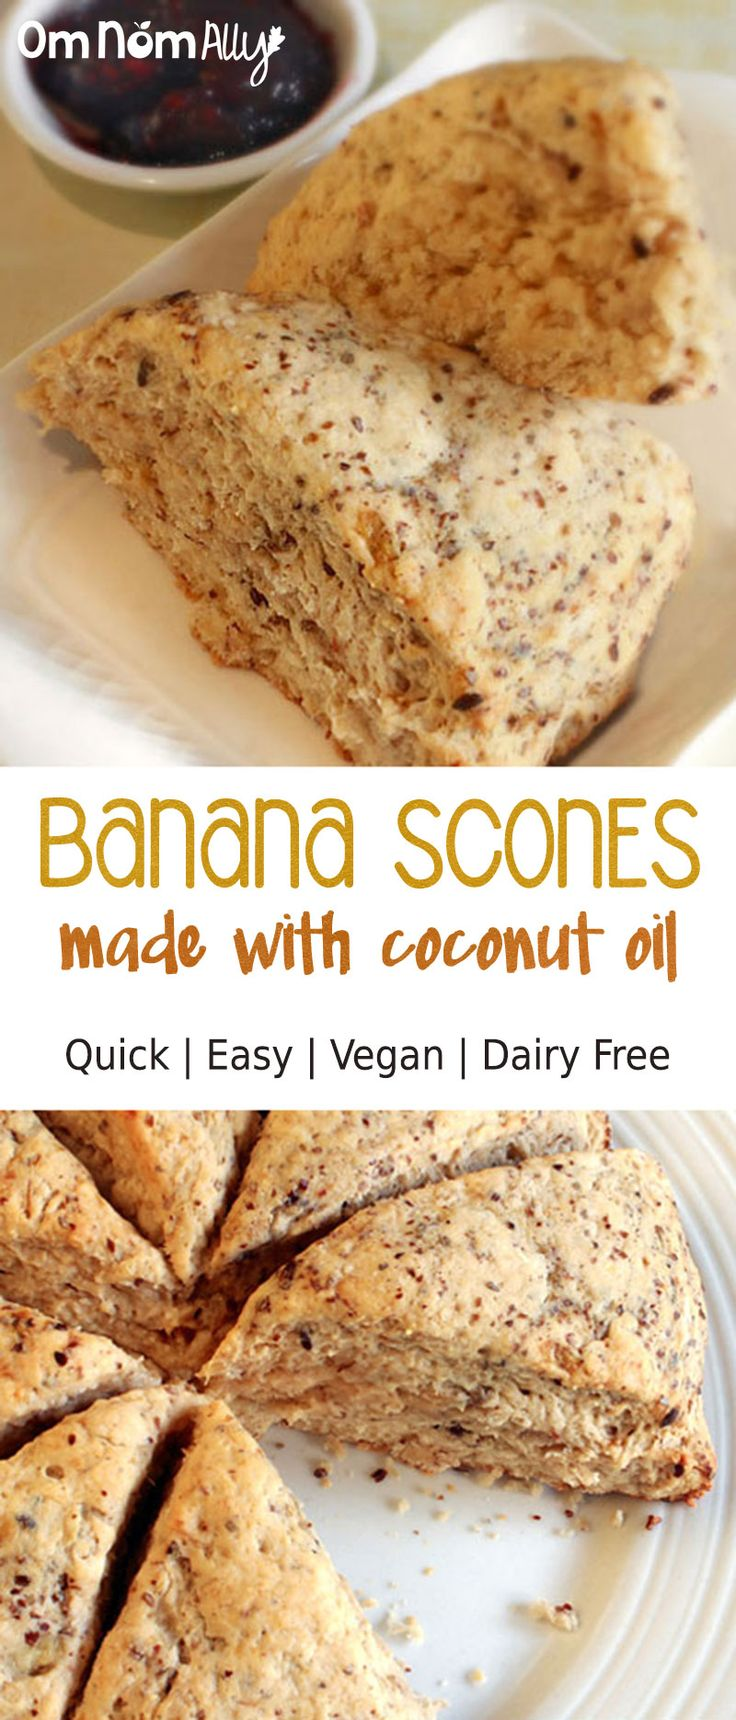 Quick & Easy Vegan Banana Scones @OmNomAlly   Made with coconut oil and coconut sugar, these Vegan Banana Scones are flaky and cakey for the most delicious brunch ever.